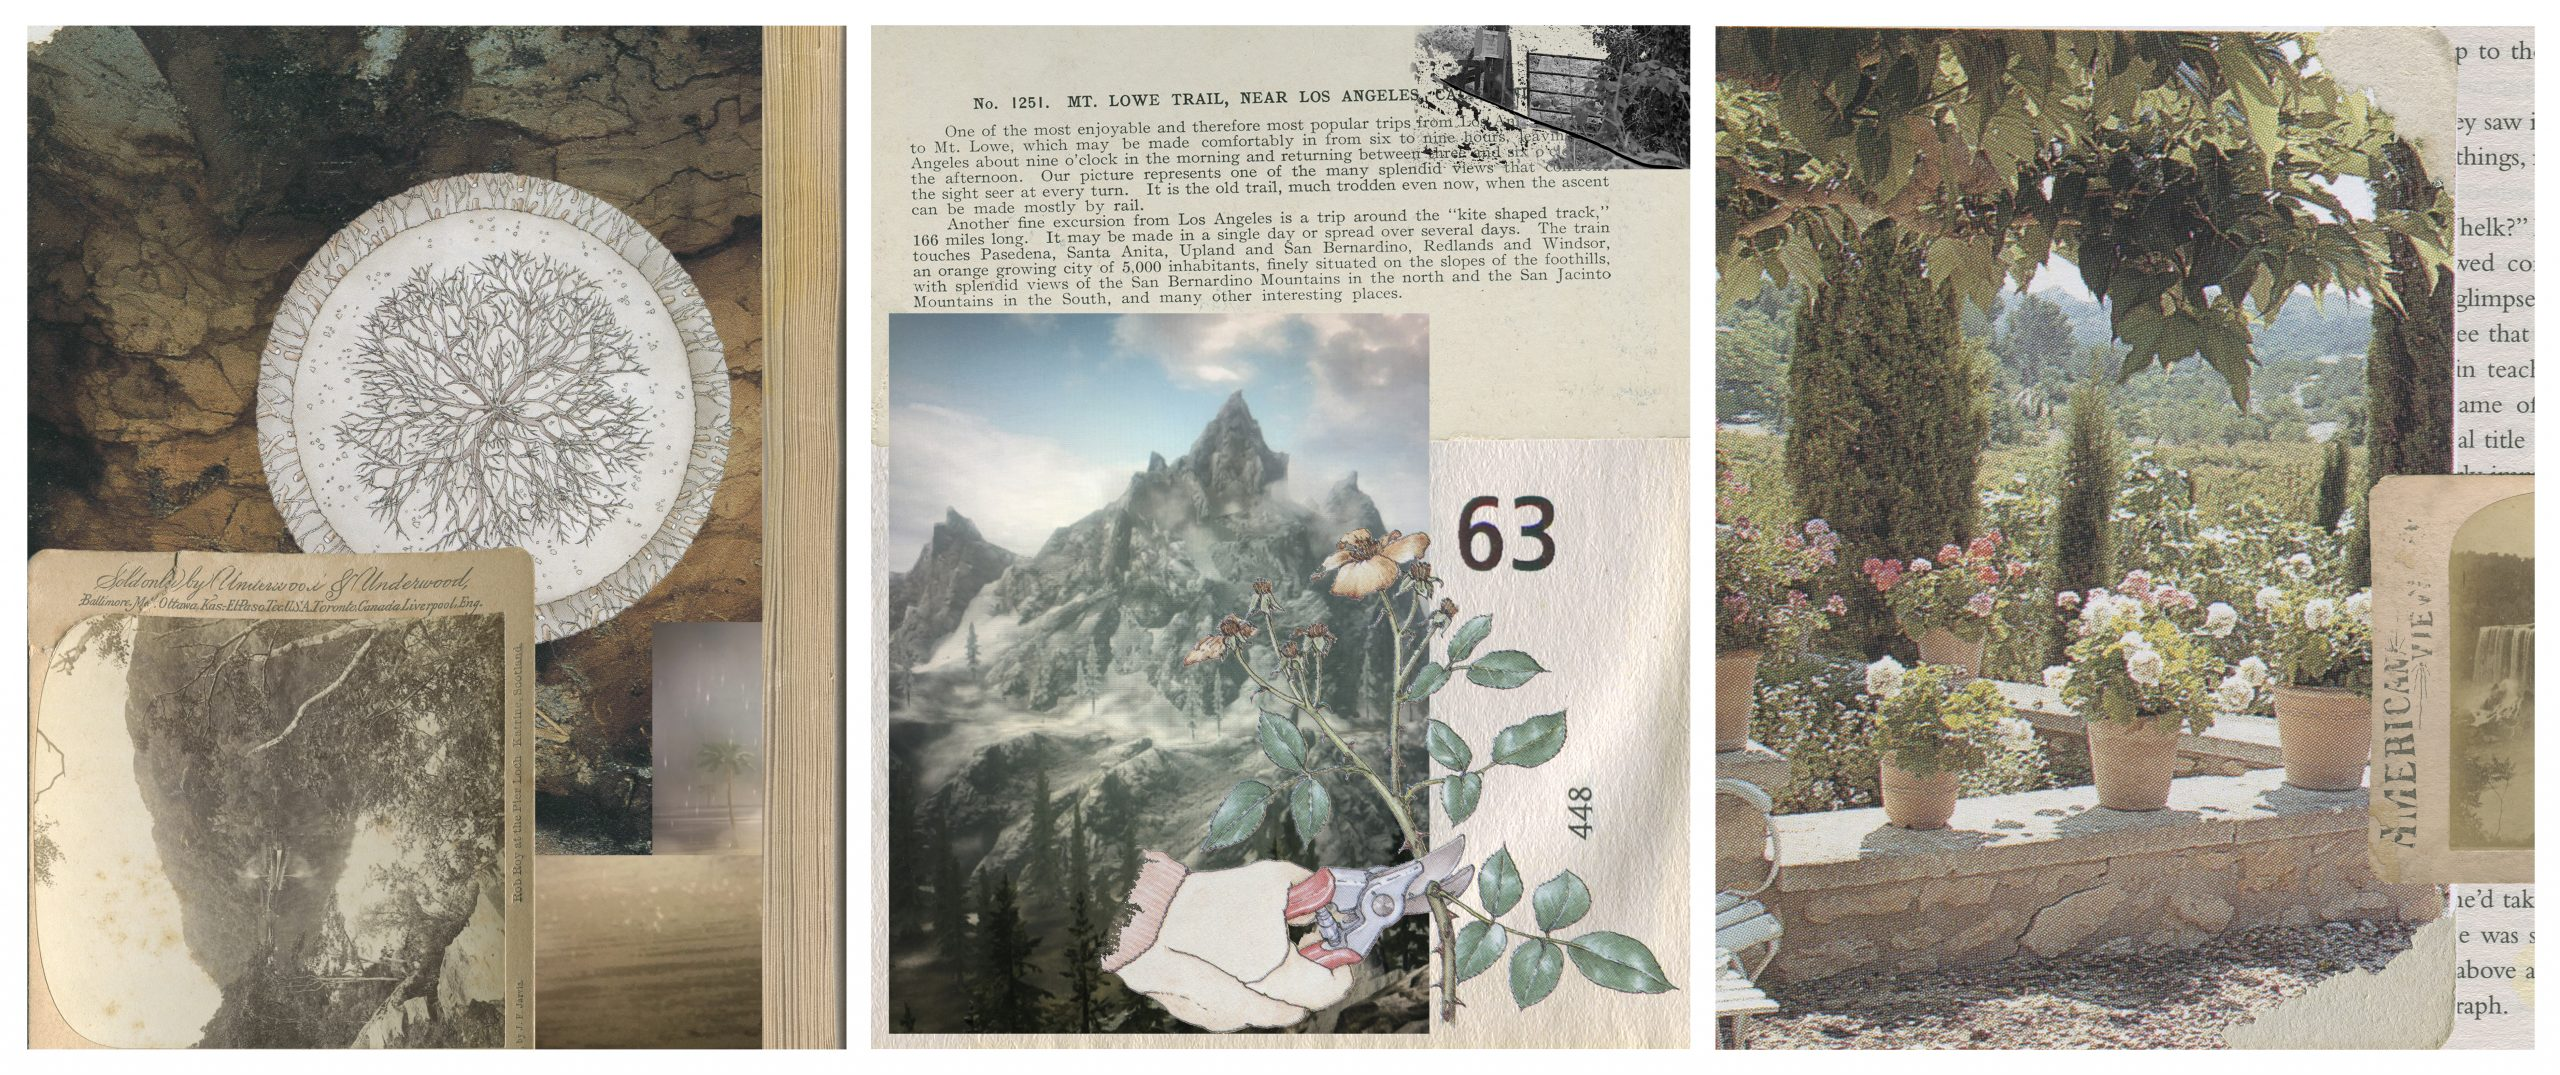 A triptych collage created using appropriated photographic materials. The three sections layer cuttings of vintage nature photographs and illustrations with faded, printed text. A new illustration of a hand cutting the stem of a flower with a pair of secateurs can be seen in the middle section.